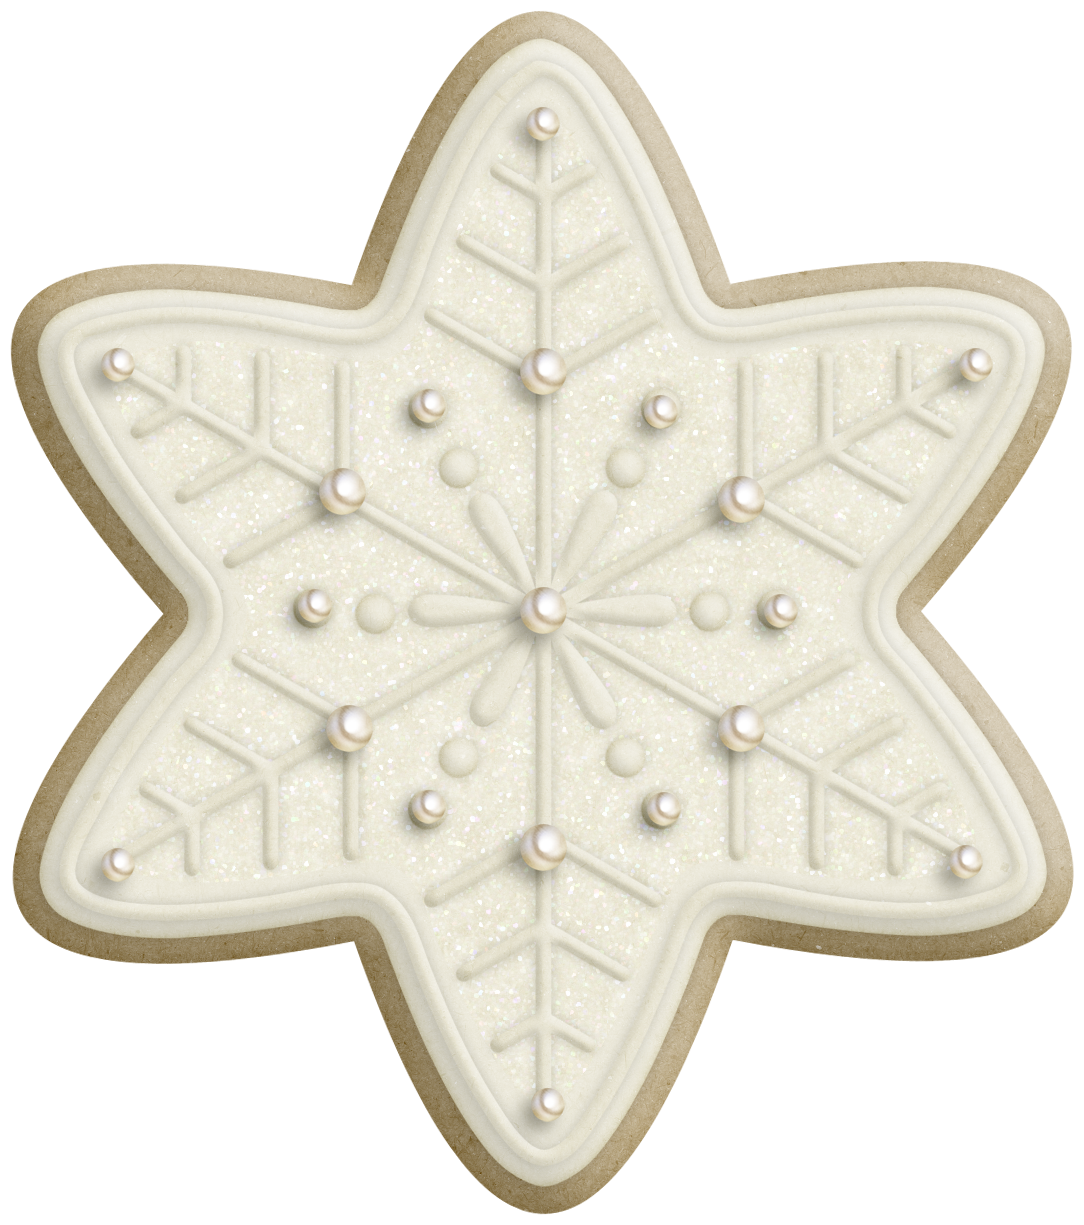 Cookie clipart vector. Fancy snowflake cookies graphic